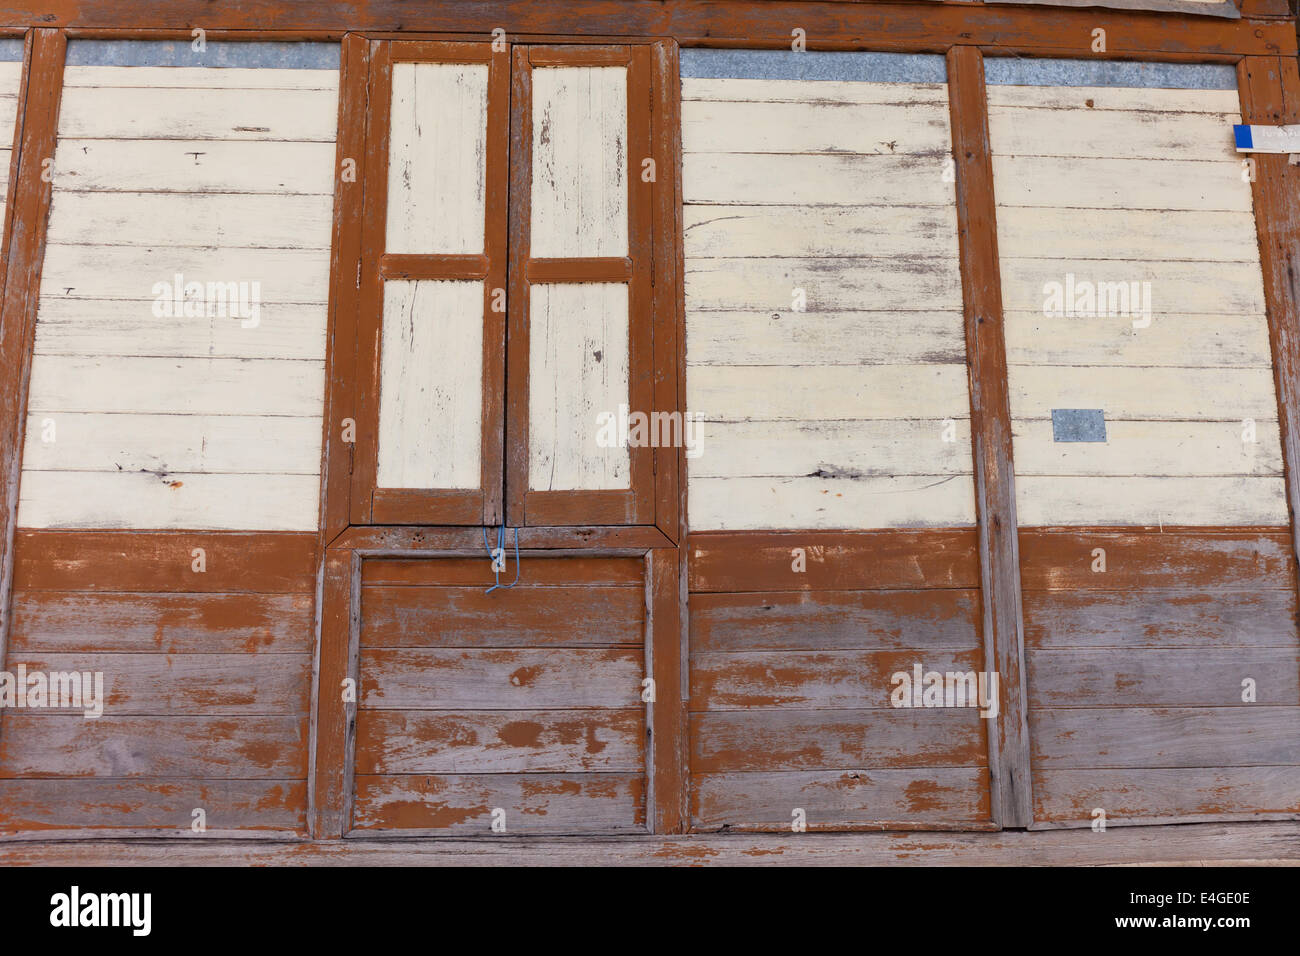 Old Shabby Wooden Planks with cracked color Paint, background - Stock Image